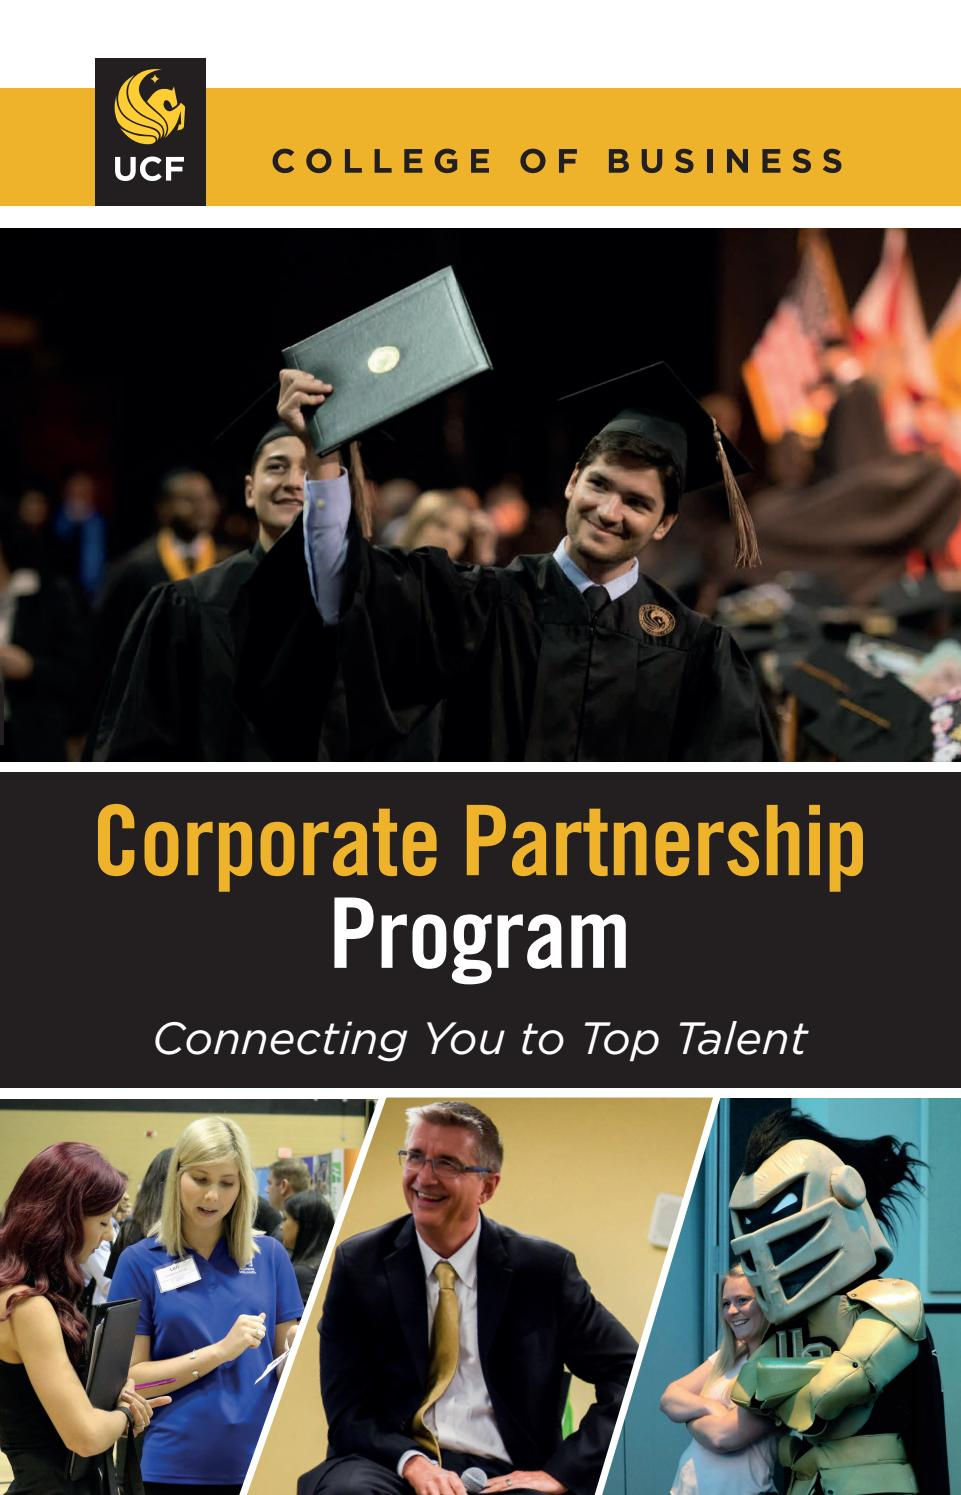 Ucf Spring 2020 Graduation.Ucf College Of Business Corporate Partnership Program 2019